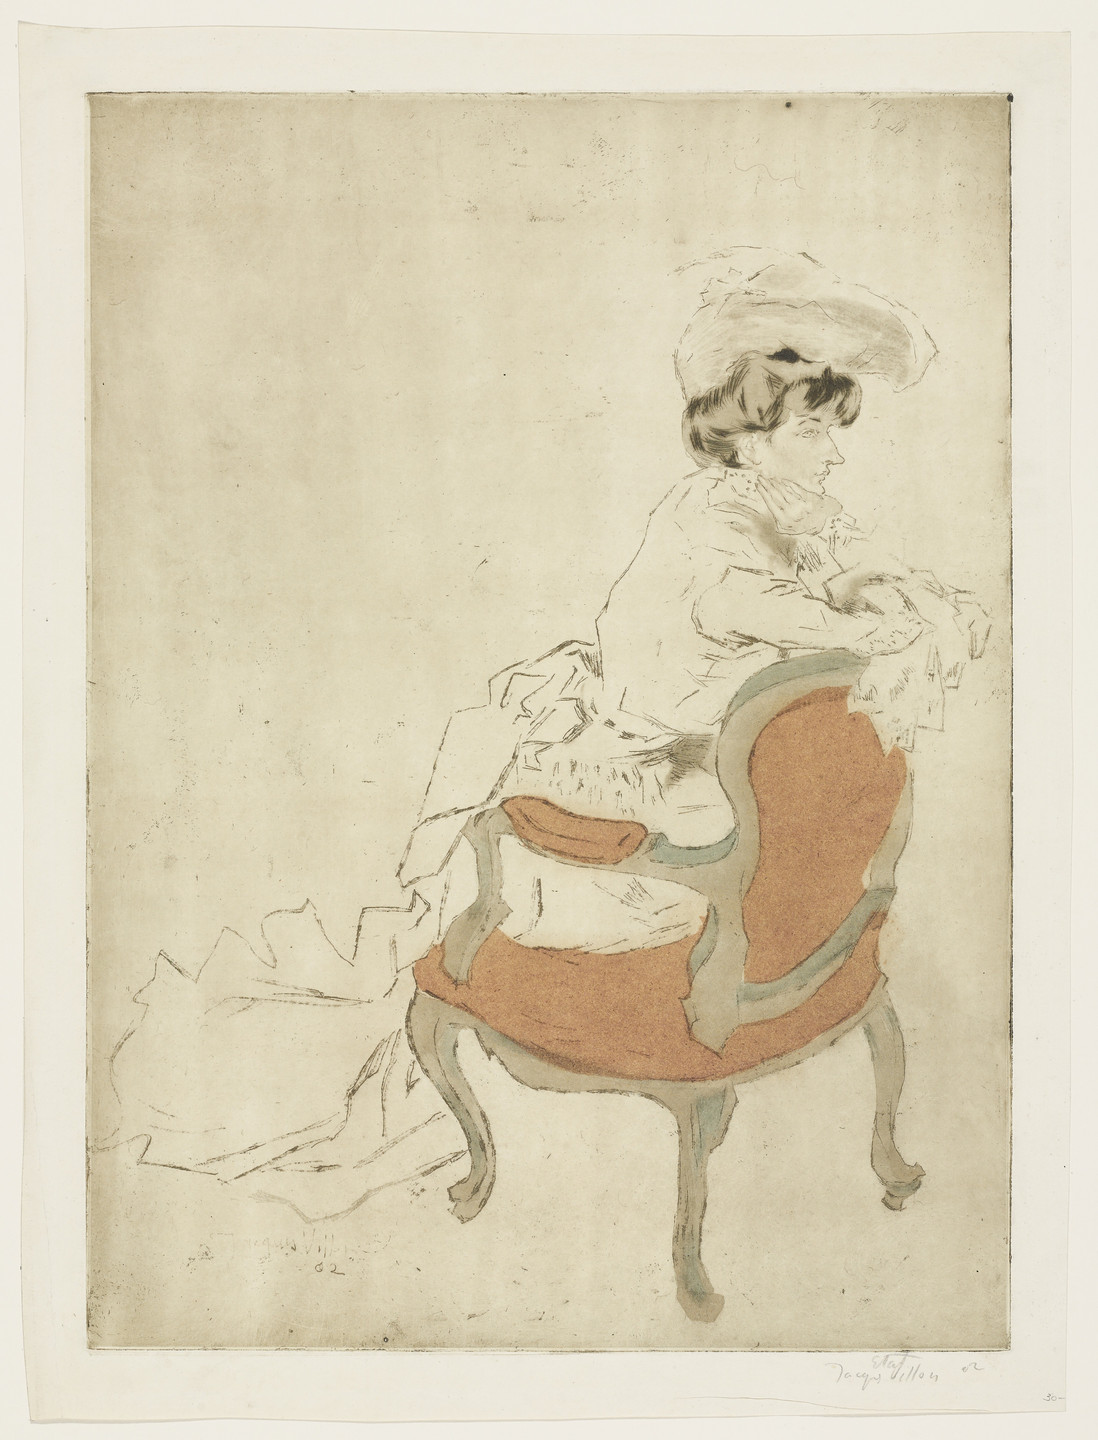 Jacques Villon. The Parisian, Turned to the Right (La Parisienne, tournée à droite). 1902